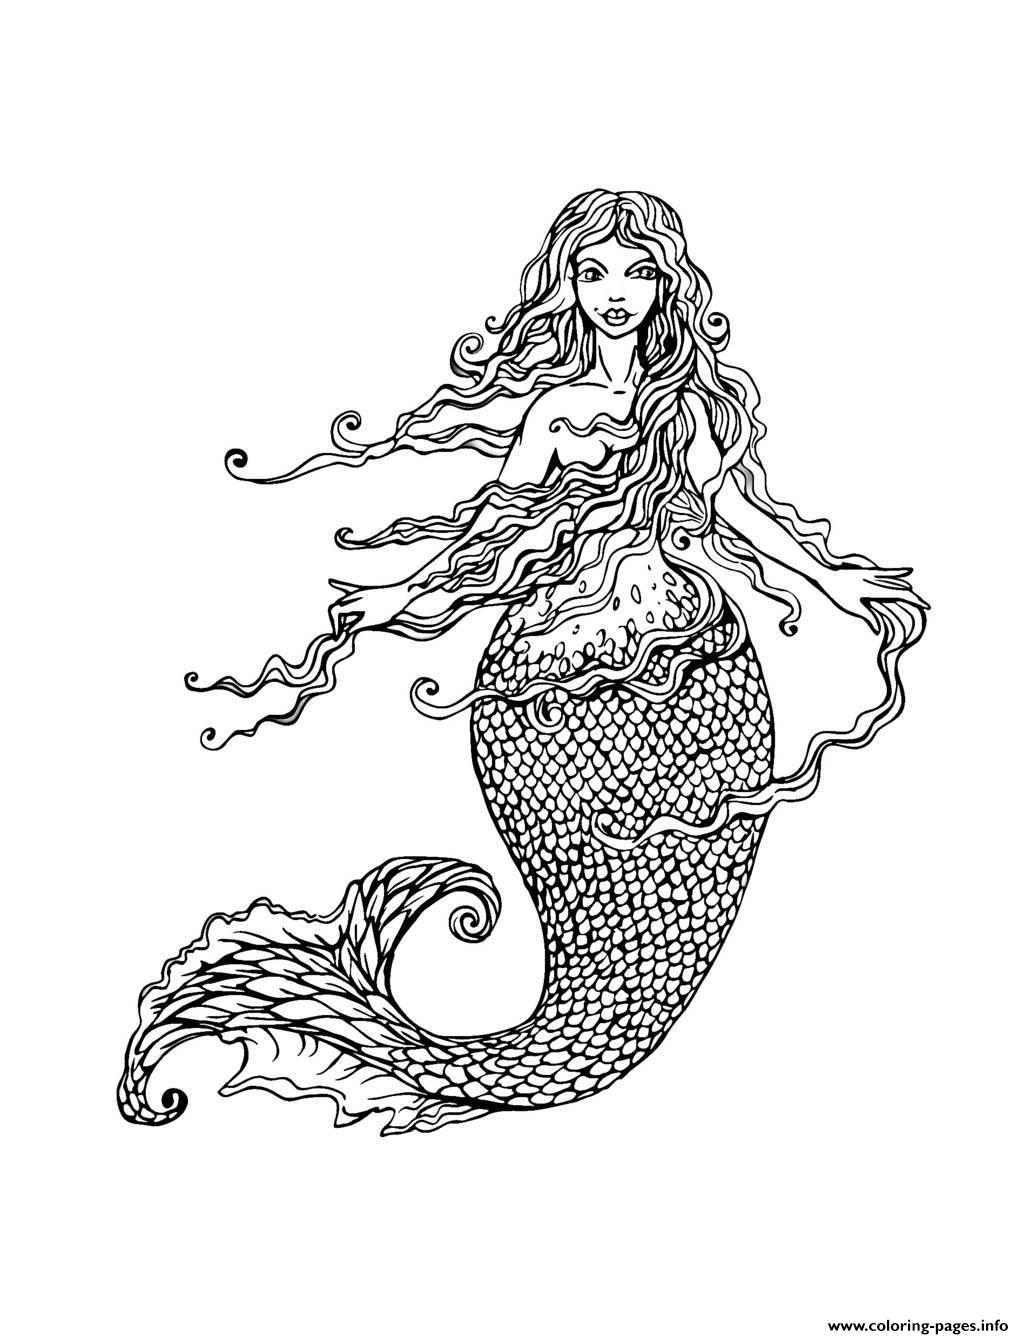 mermaid coloring pages online coloring pages mermaid ideas whitesbelfast mermaid online coloring pages